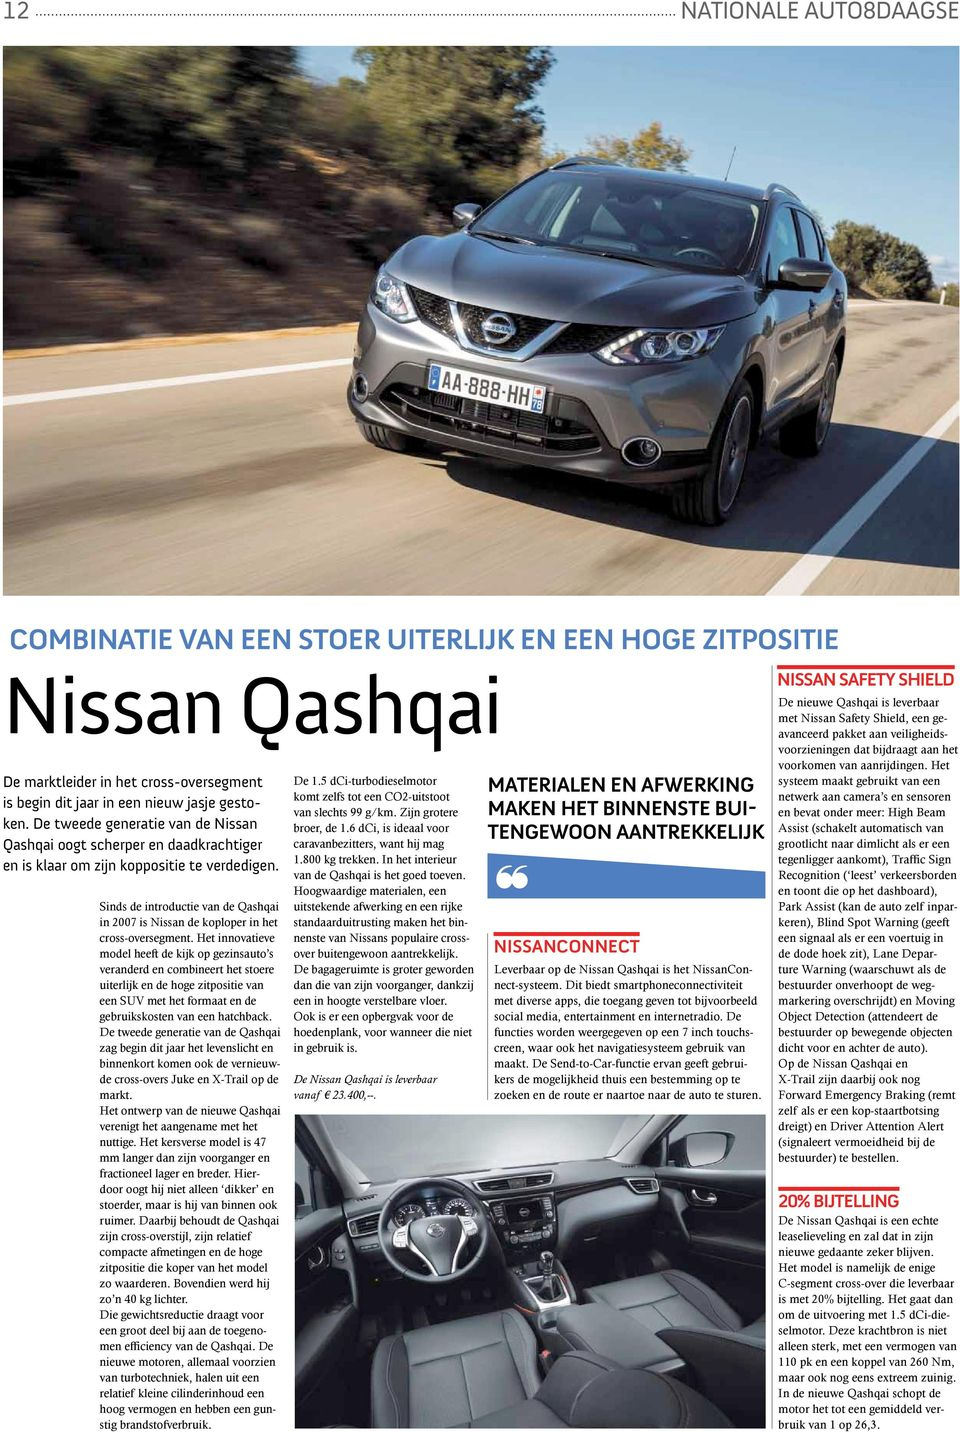 Sinds de introductie van de Qashqai in 2007 is Nissan de koploper in het cross-oversegment.